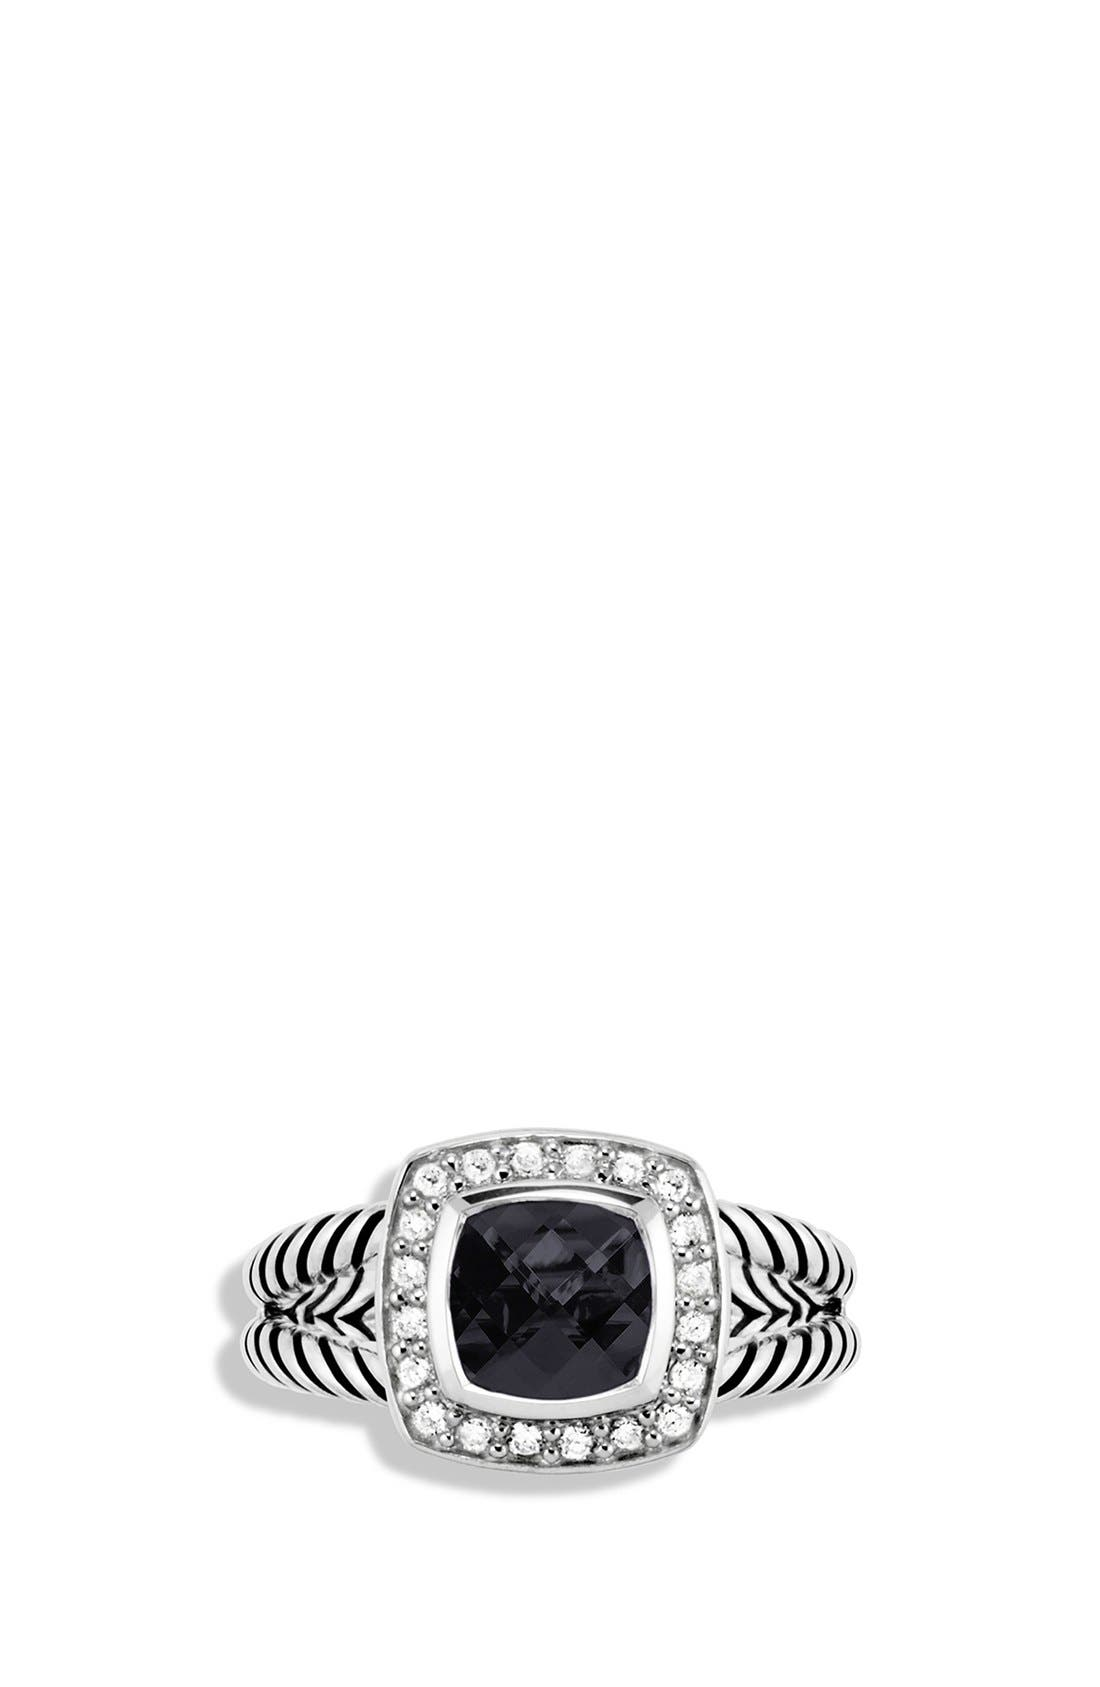 'Albion' Petite Ring with Semiprecious Stone & Diamonds,                             Alternate thumbnail 3, color,                             BLACK ONYX